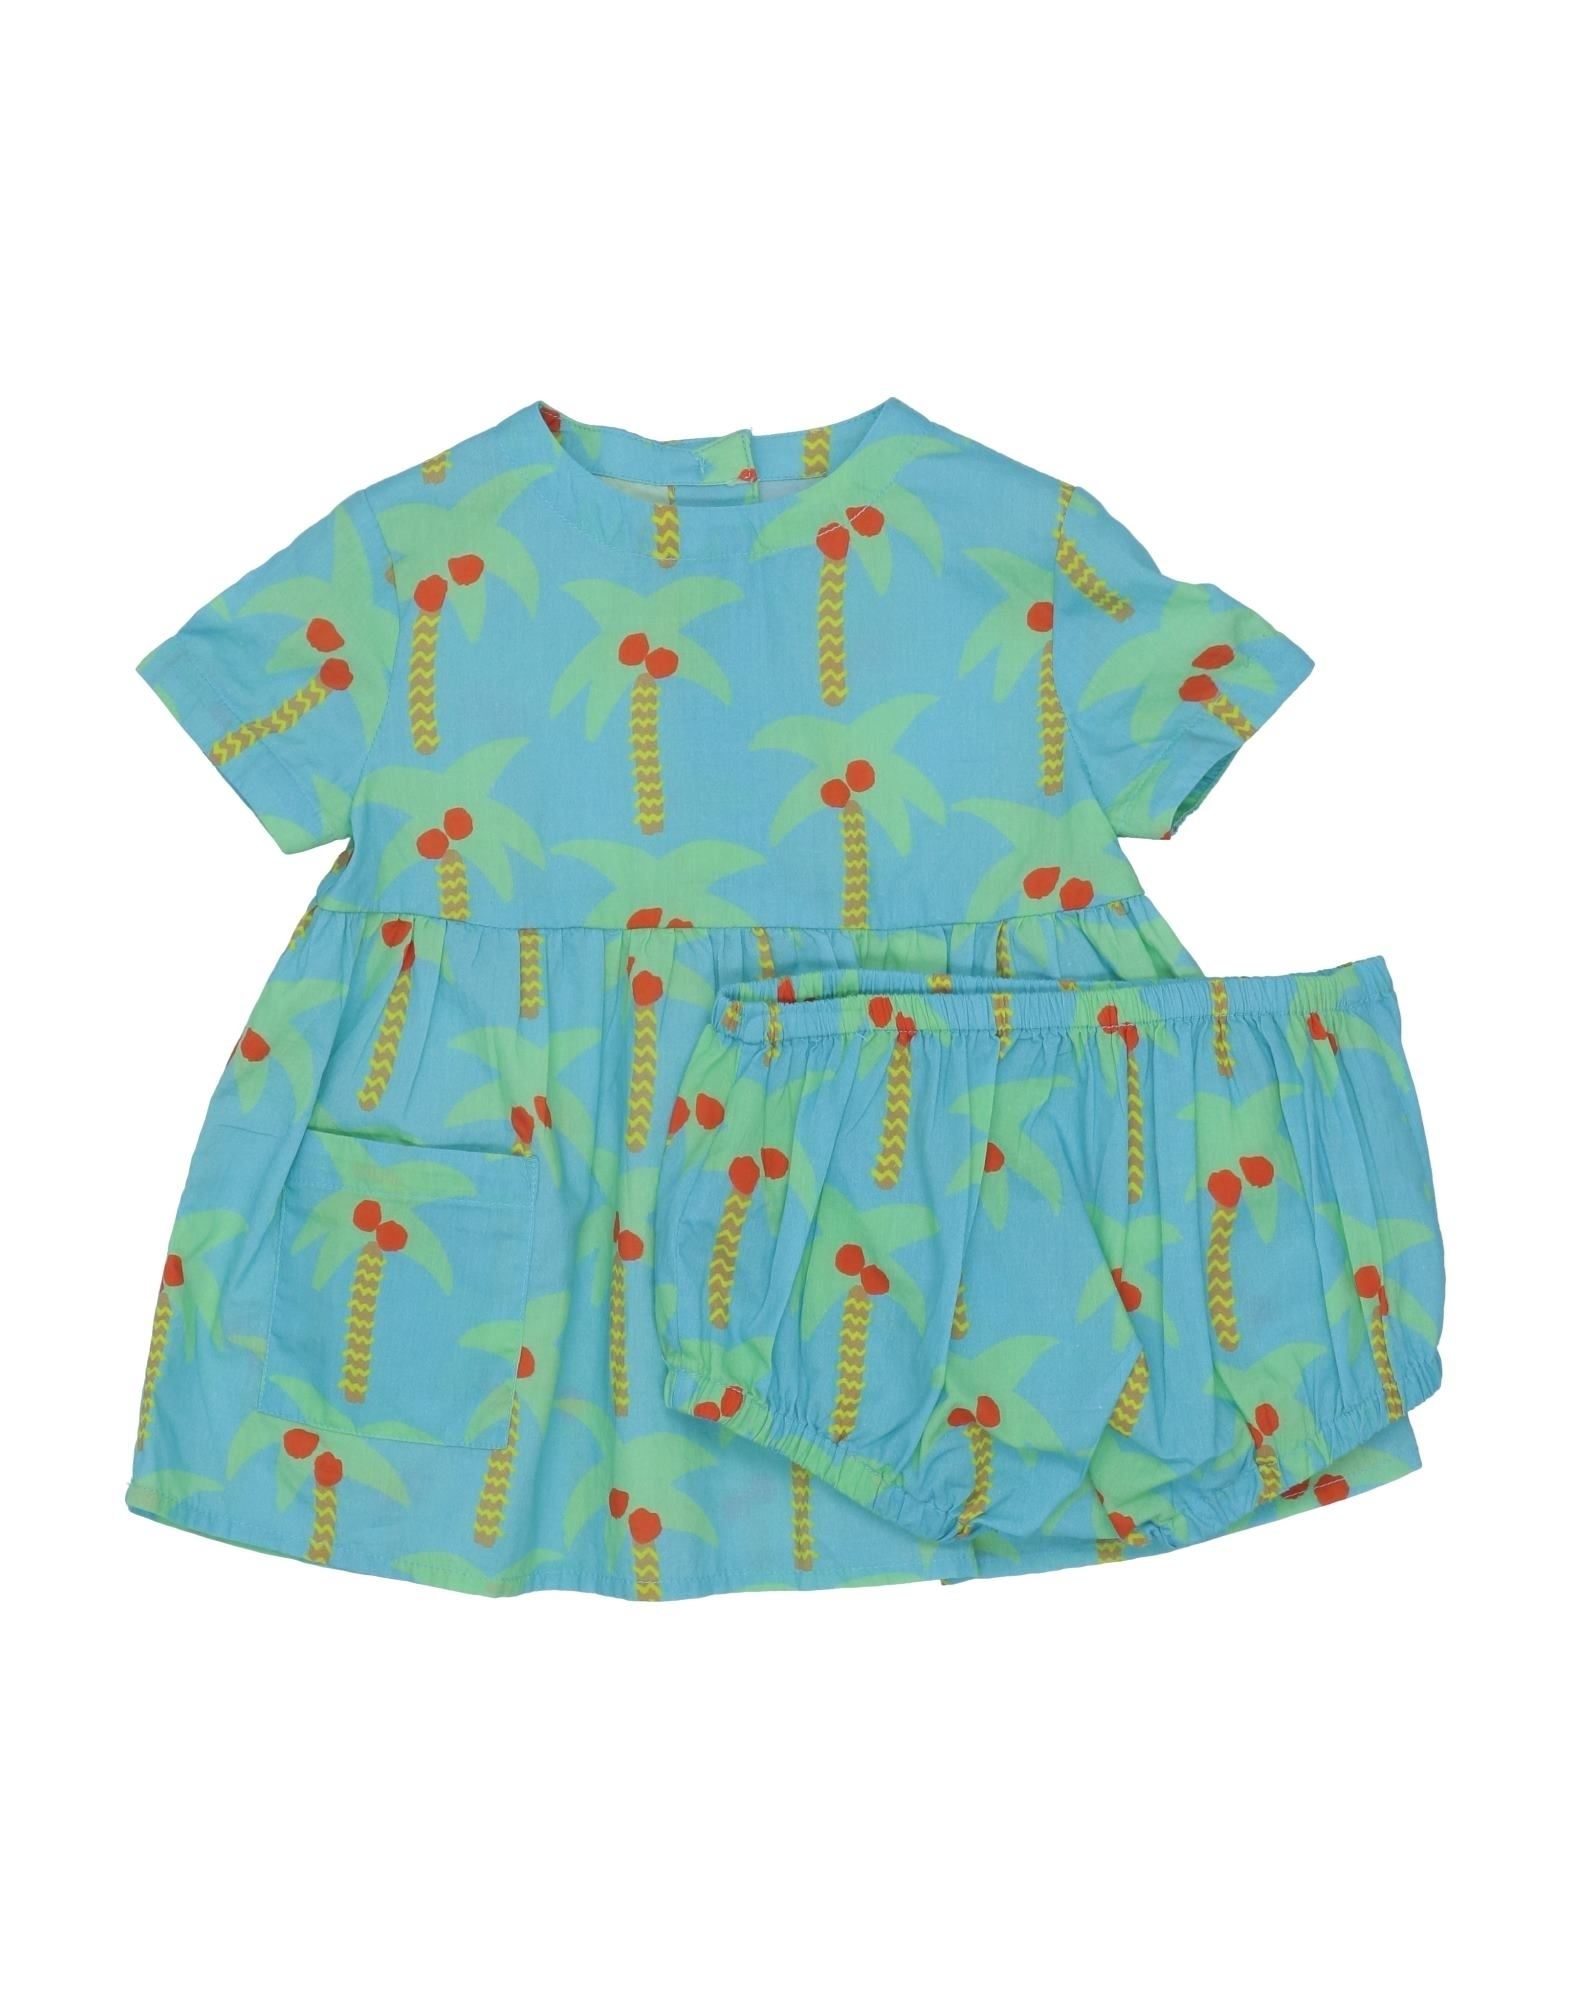 STELLA McCARTNEY KIDS Sets. plain weave, no appliqués, multicolor pattern, round collar, short sleeves, button closing, rear closure, inner shorts, 2-piece set, wash at 30degree c, do not dry clean, iron at 150degree c max, do not bleach, do not tumble dry. 100% Cotton